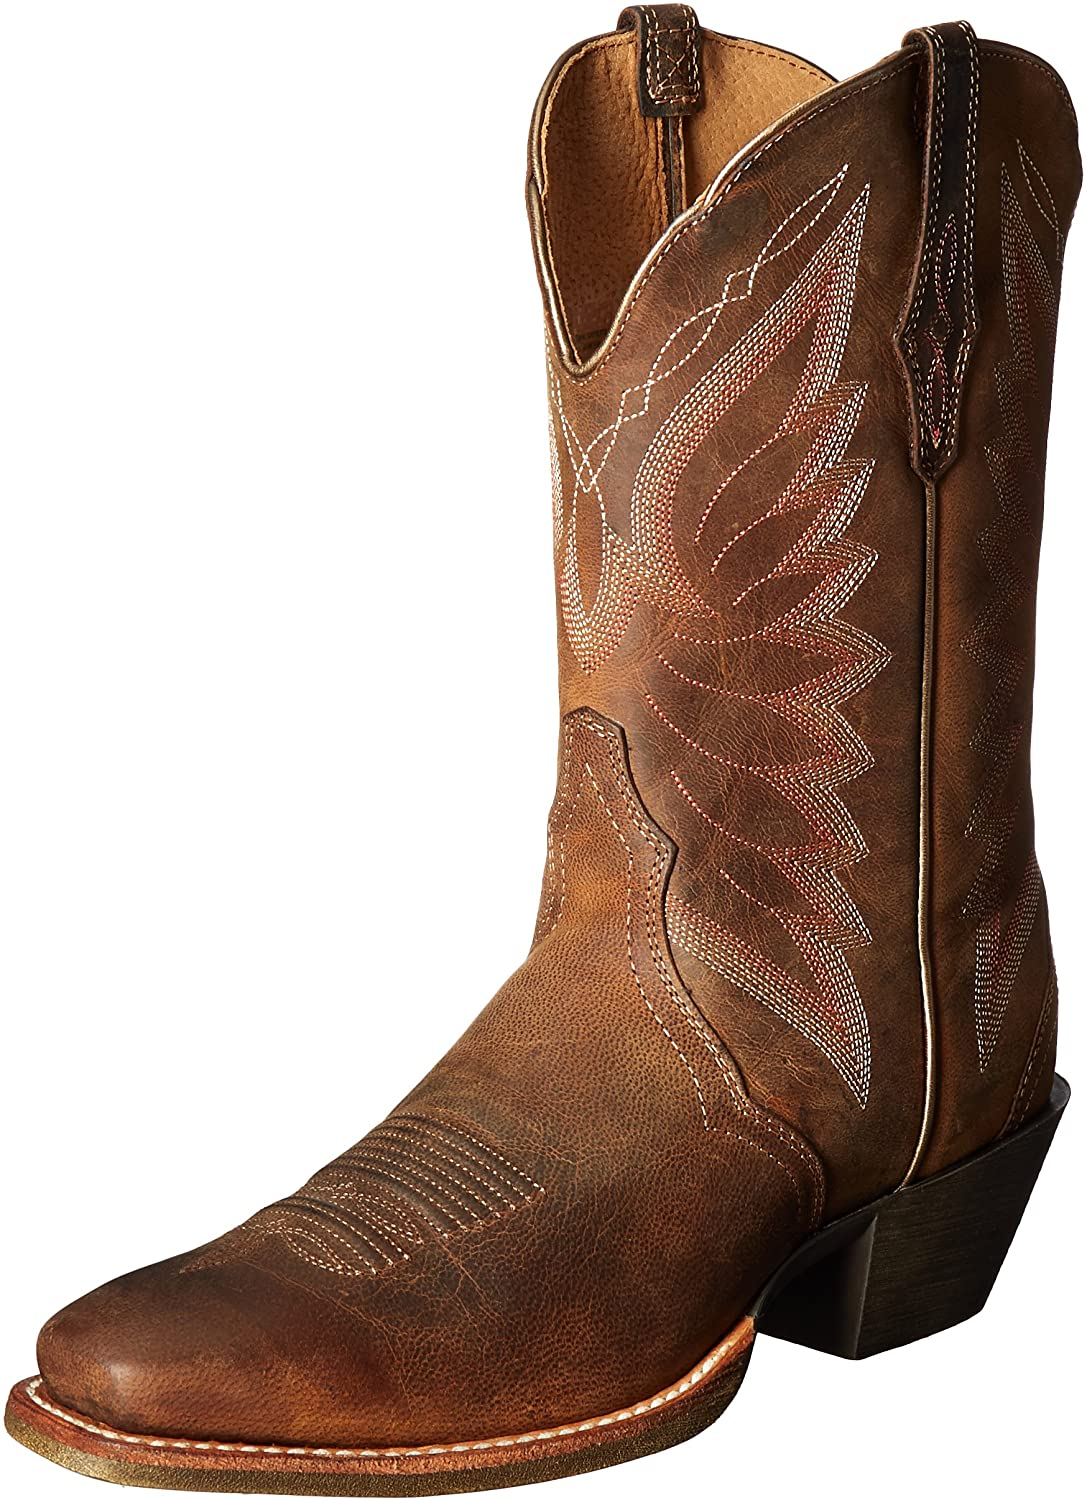 Ariat Women's Autry Western Cowboy Boot